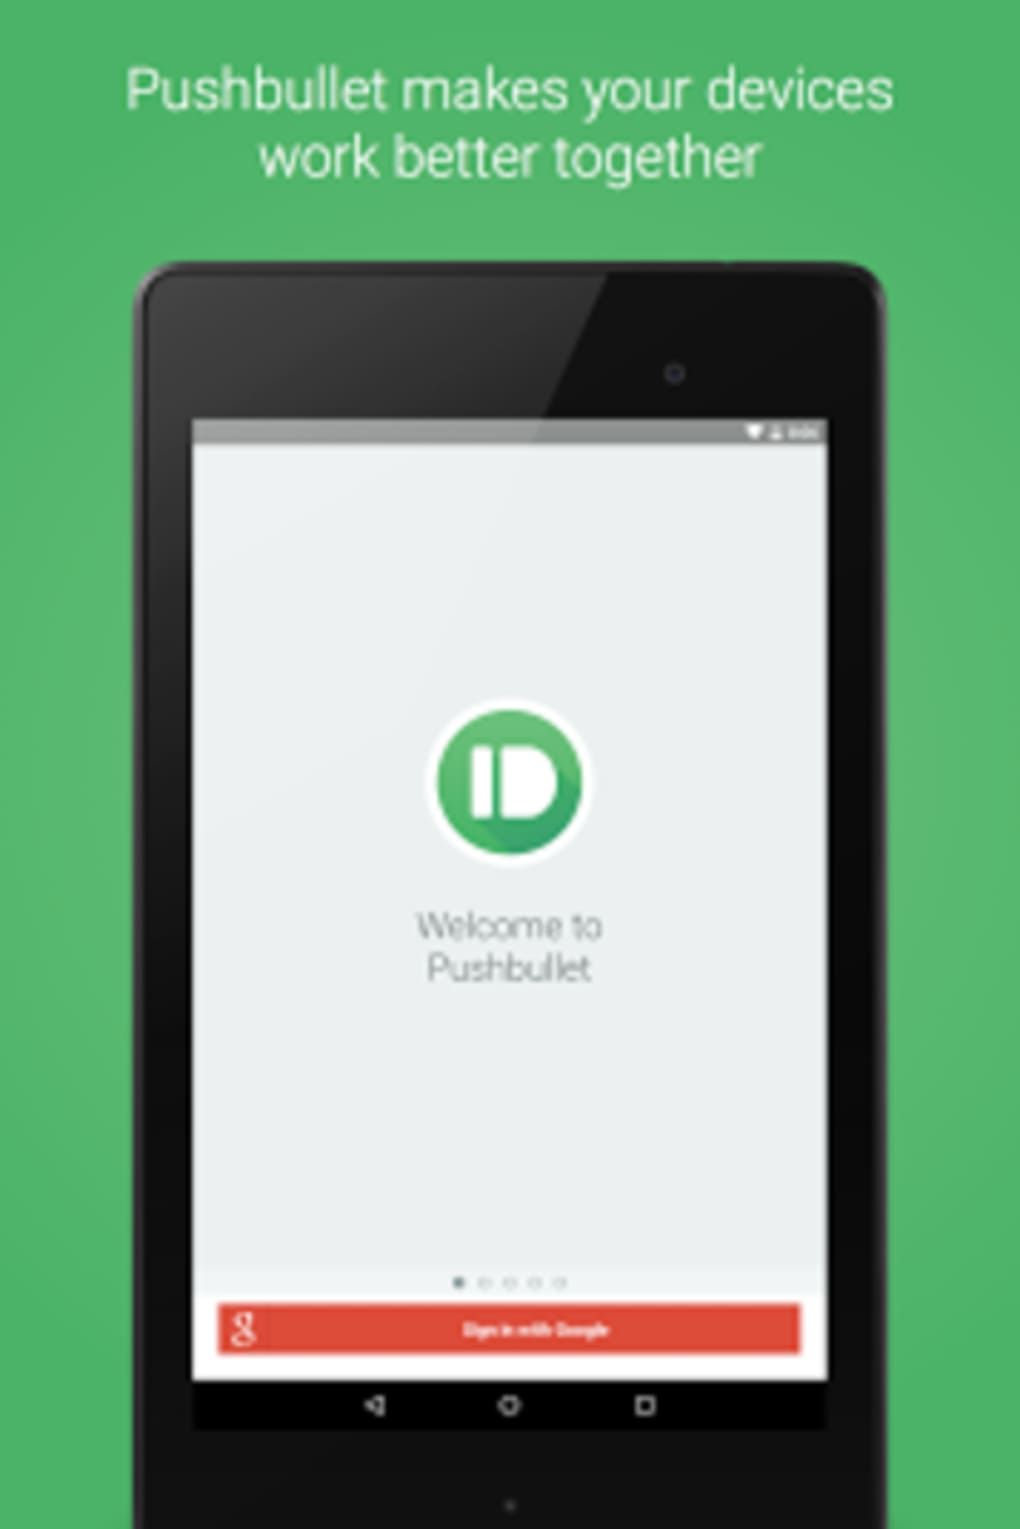 PushBullet for Android - Download